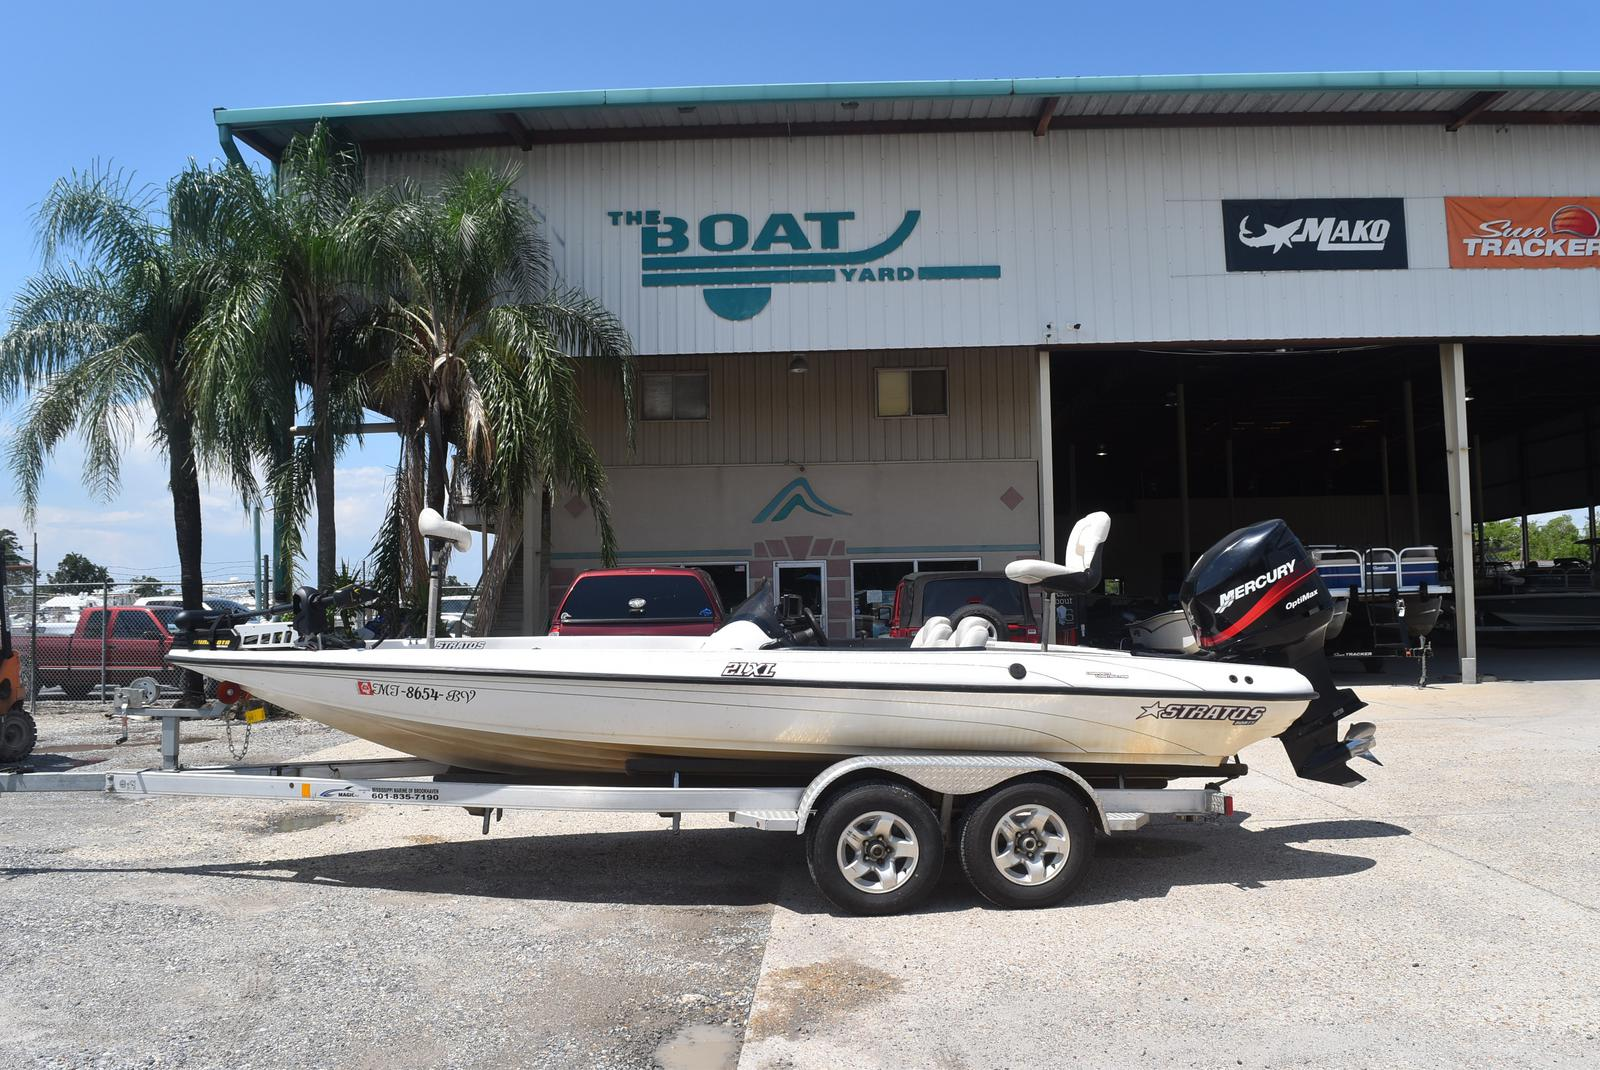 Inventory from Bullet and Stratos The Boat Yard Inc  Marrero